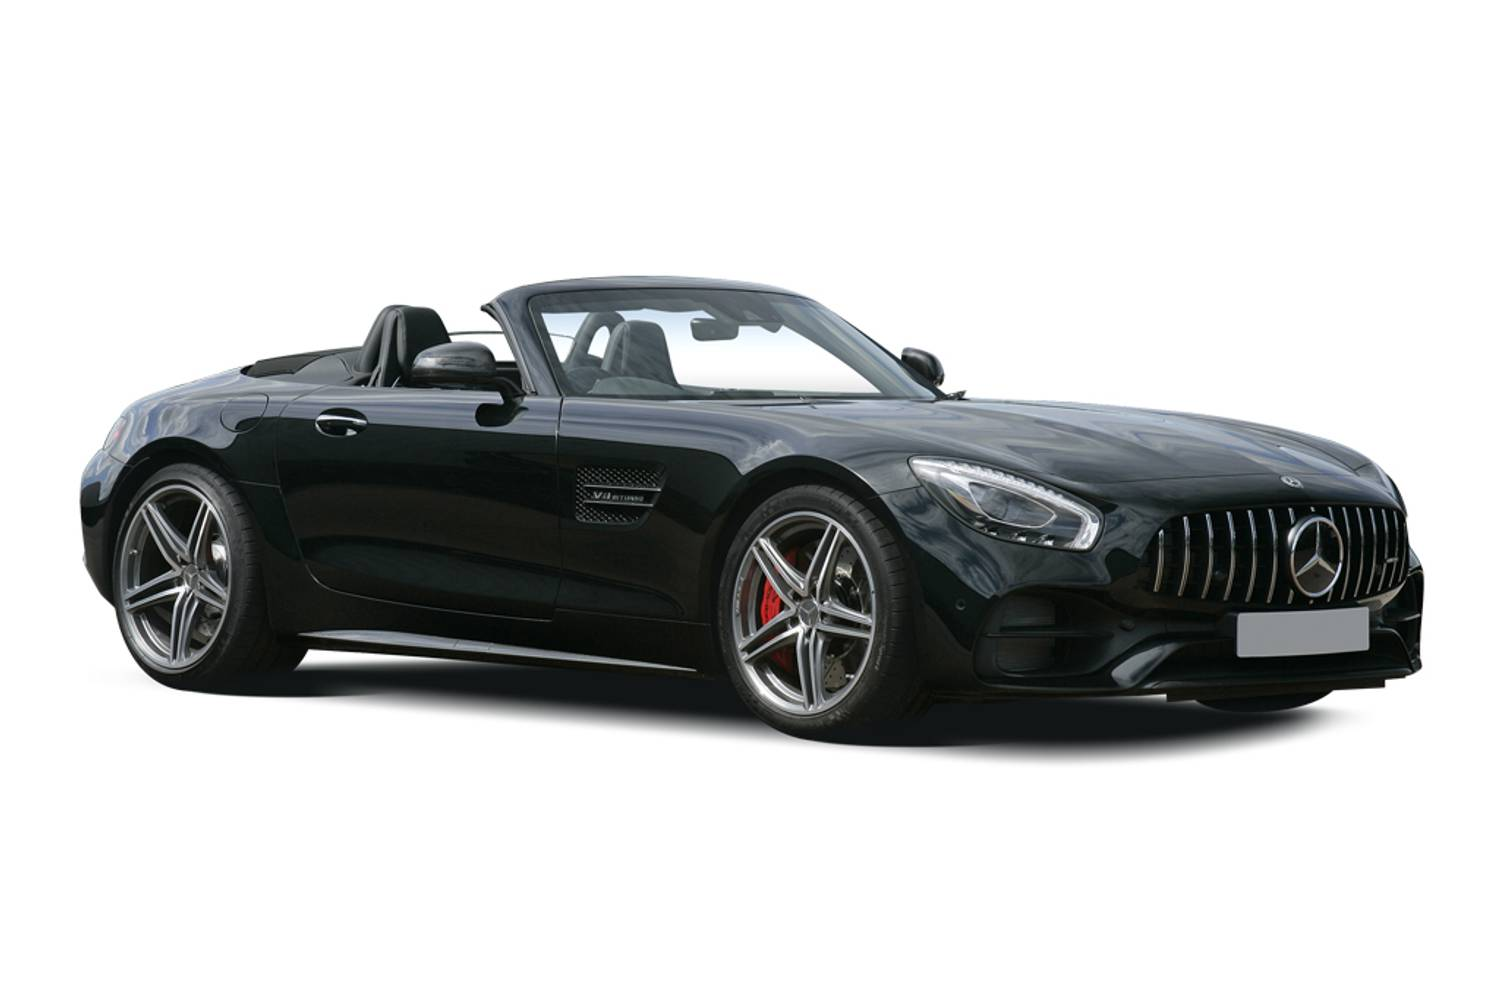 New Mercedes Benz Amg Gt Roadster Special Editions Gt Night Edition 2 Door Auto 2020 For Sale